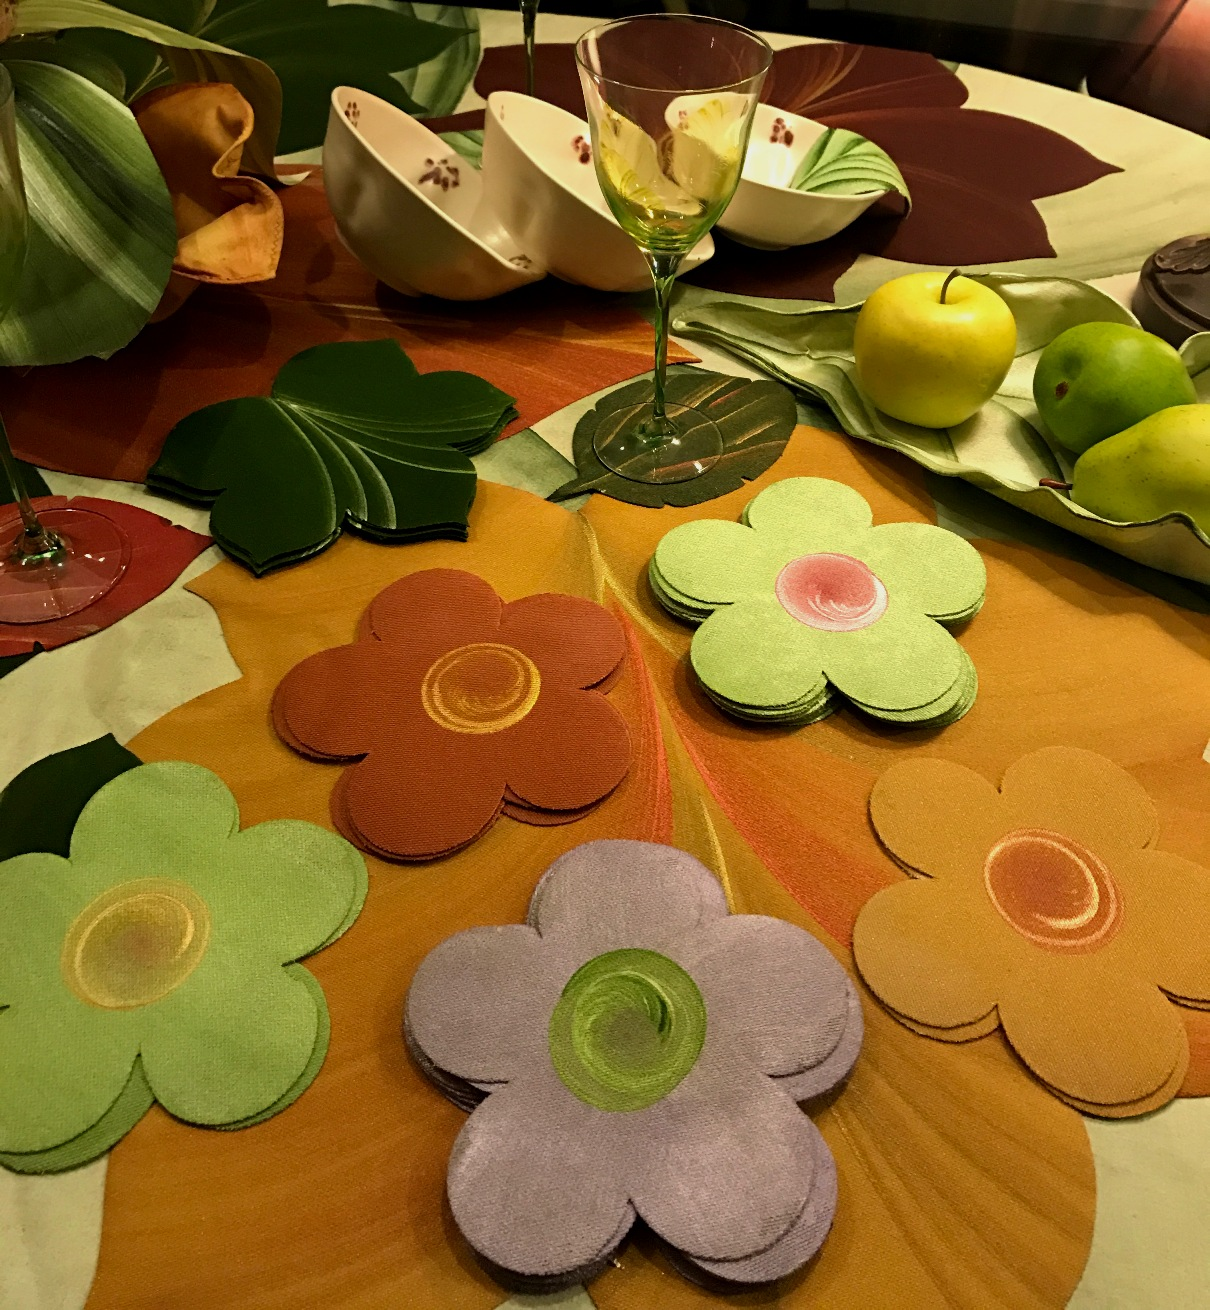 coasters-flower-asst-store-display.jpeg